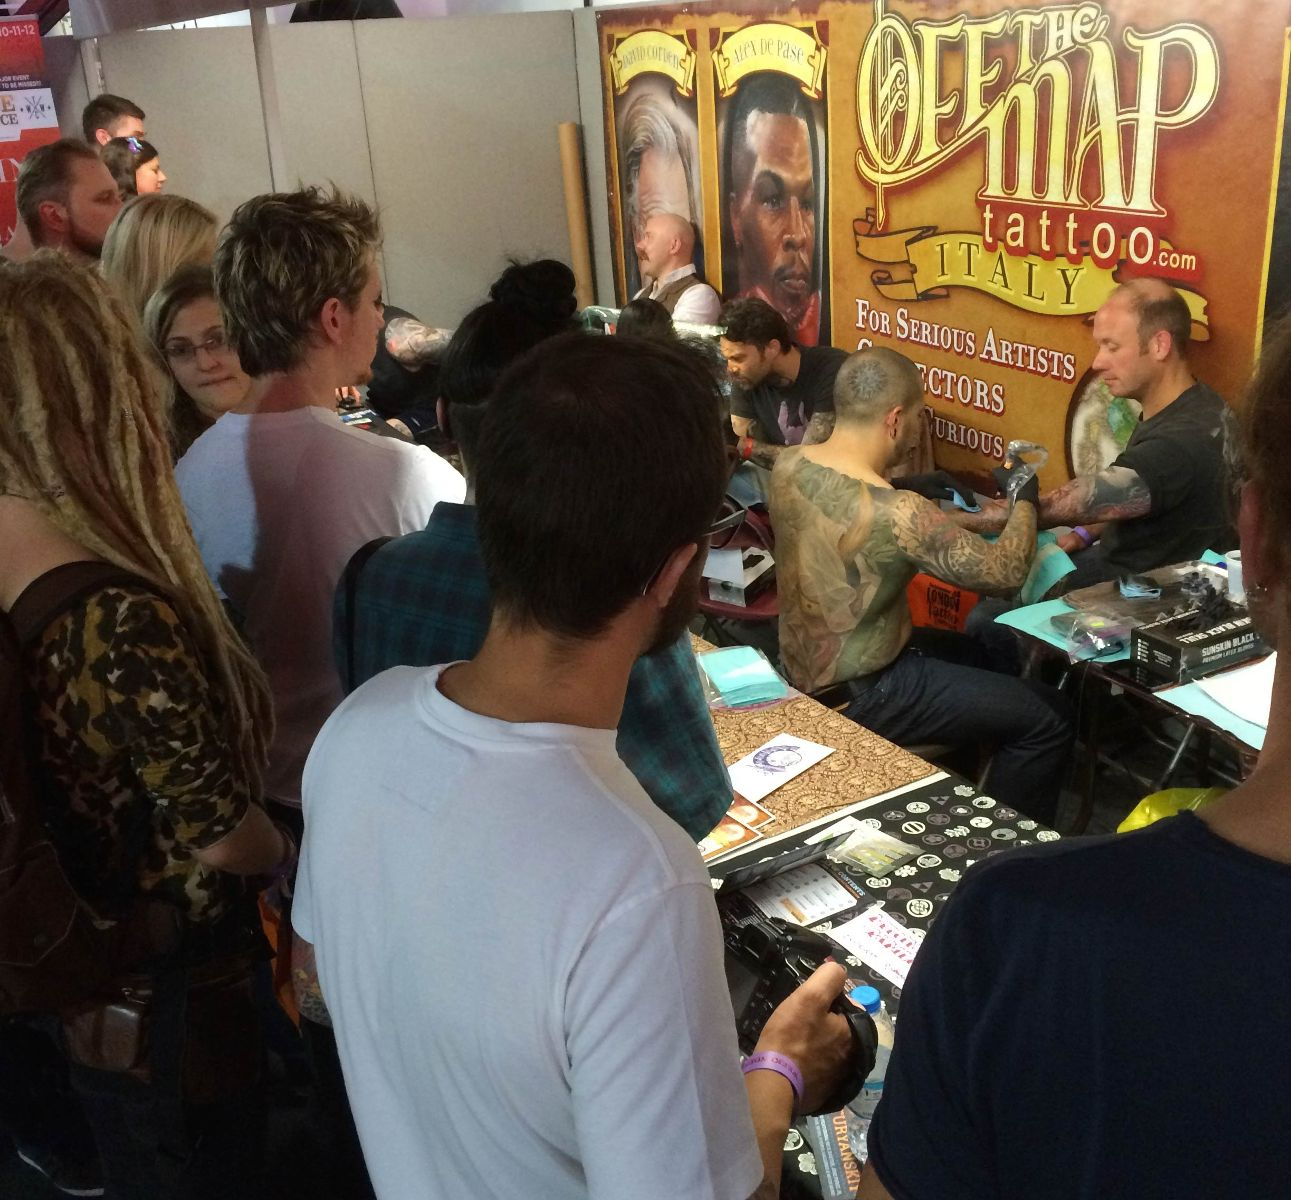 Off the Map Tattoo Booth at the 2014 London Tattoo Convention